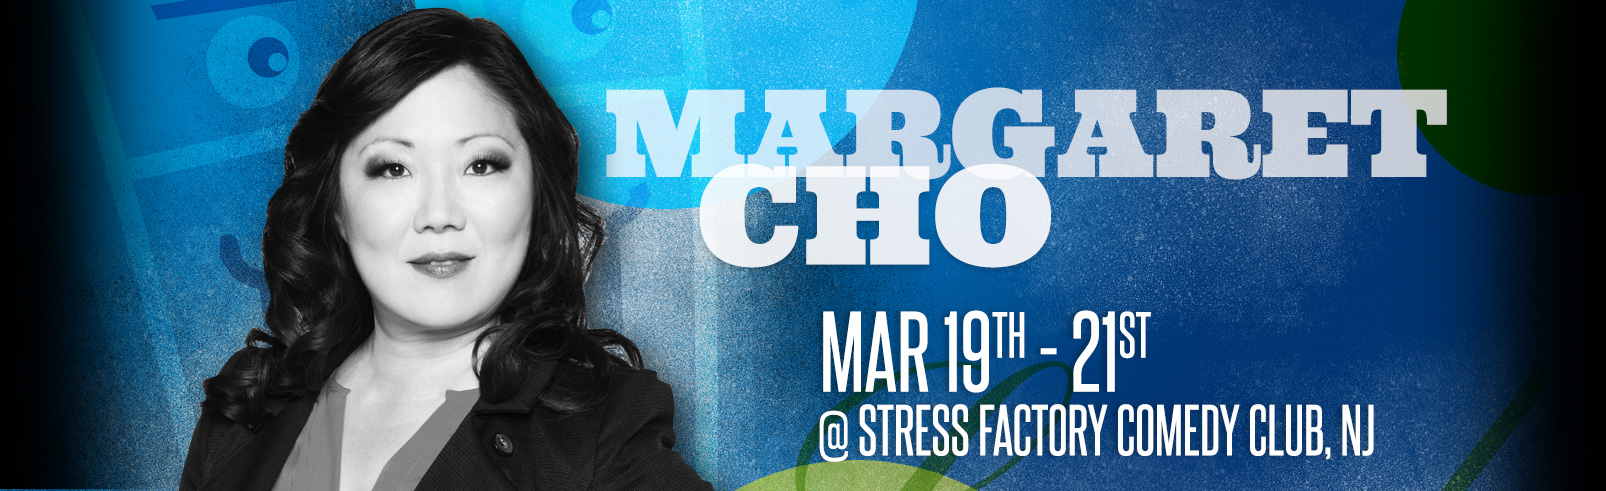 Margaret Cho @ Stress Factory Comedy Club